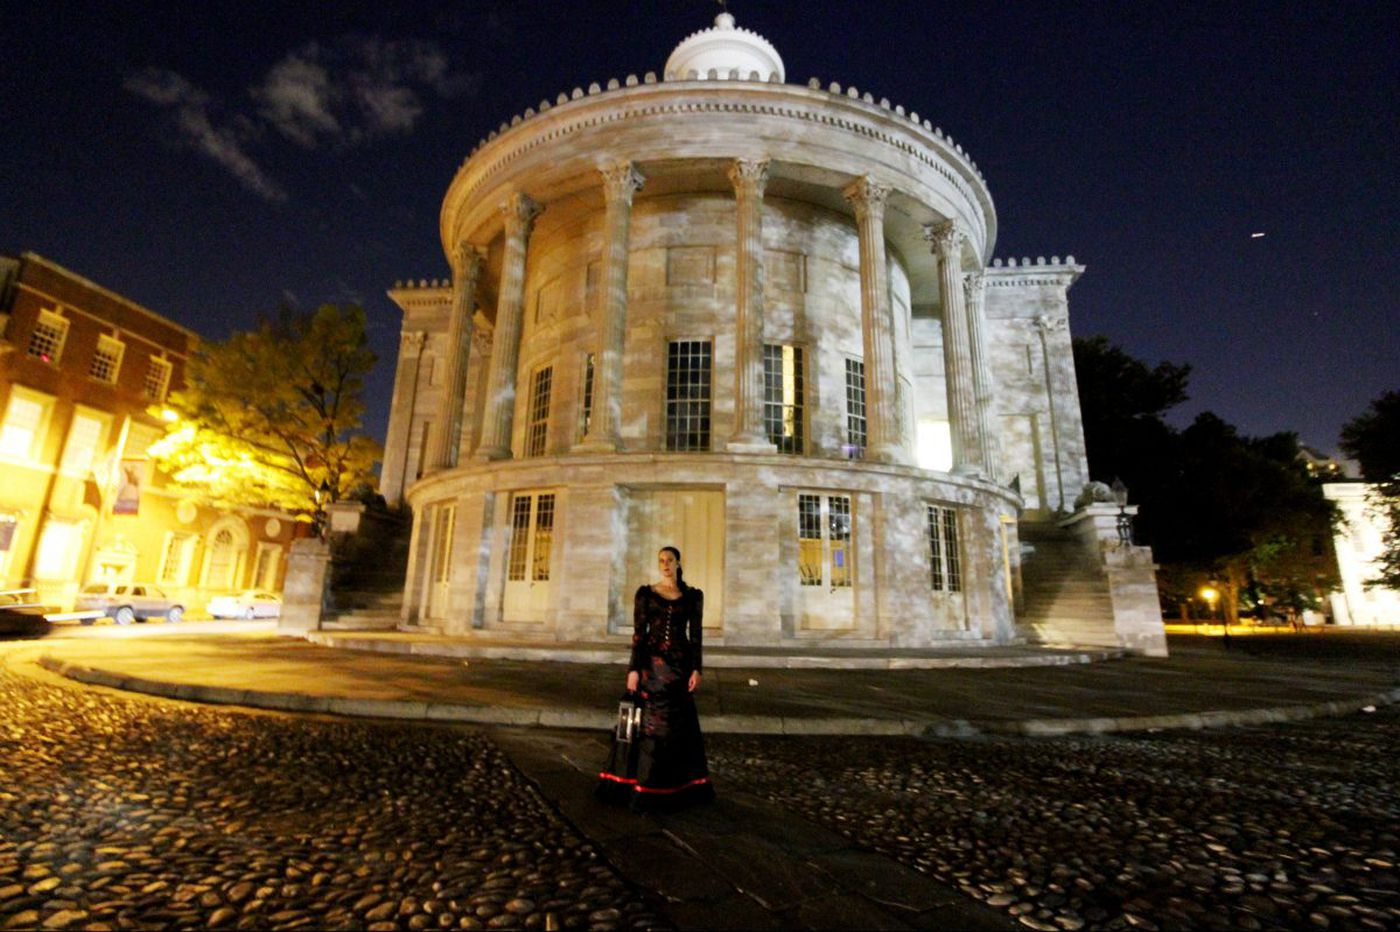 Where to see ghosts in Philly (if you believe in ghosts)